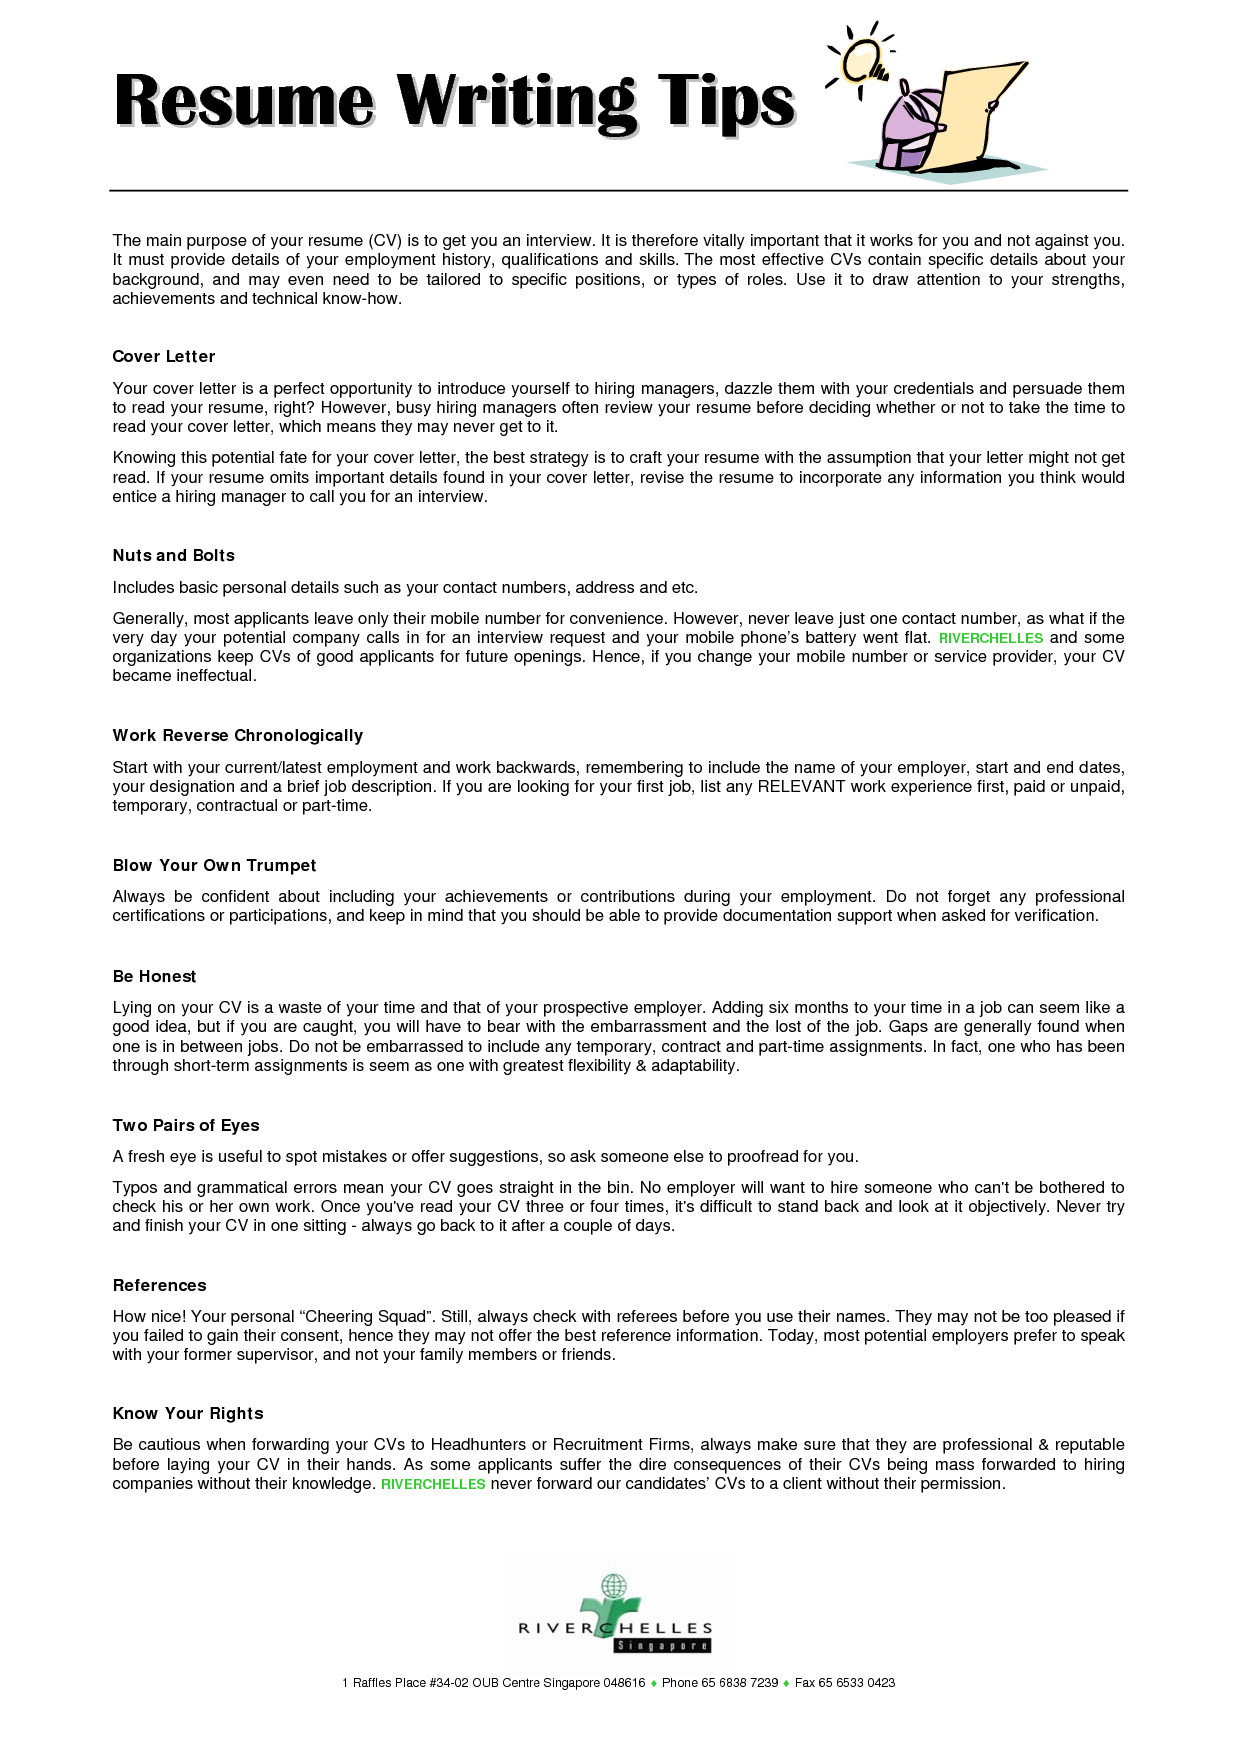 Career Builder Resume Template Resume Writing Tips  Resumecareer  Pinterest  Resume Writing